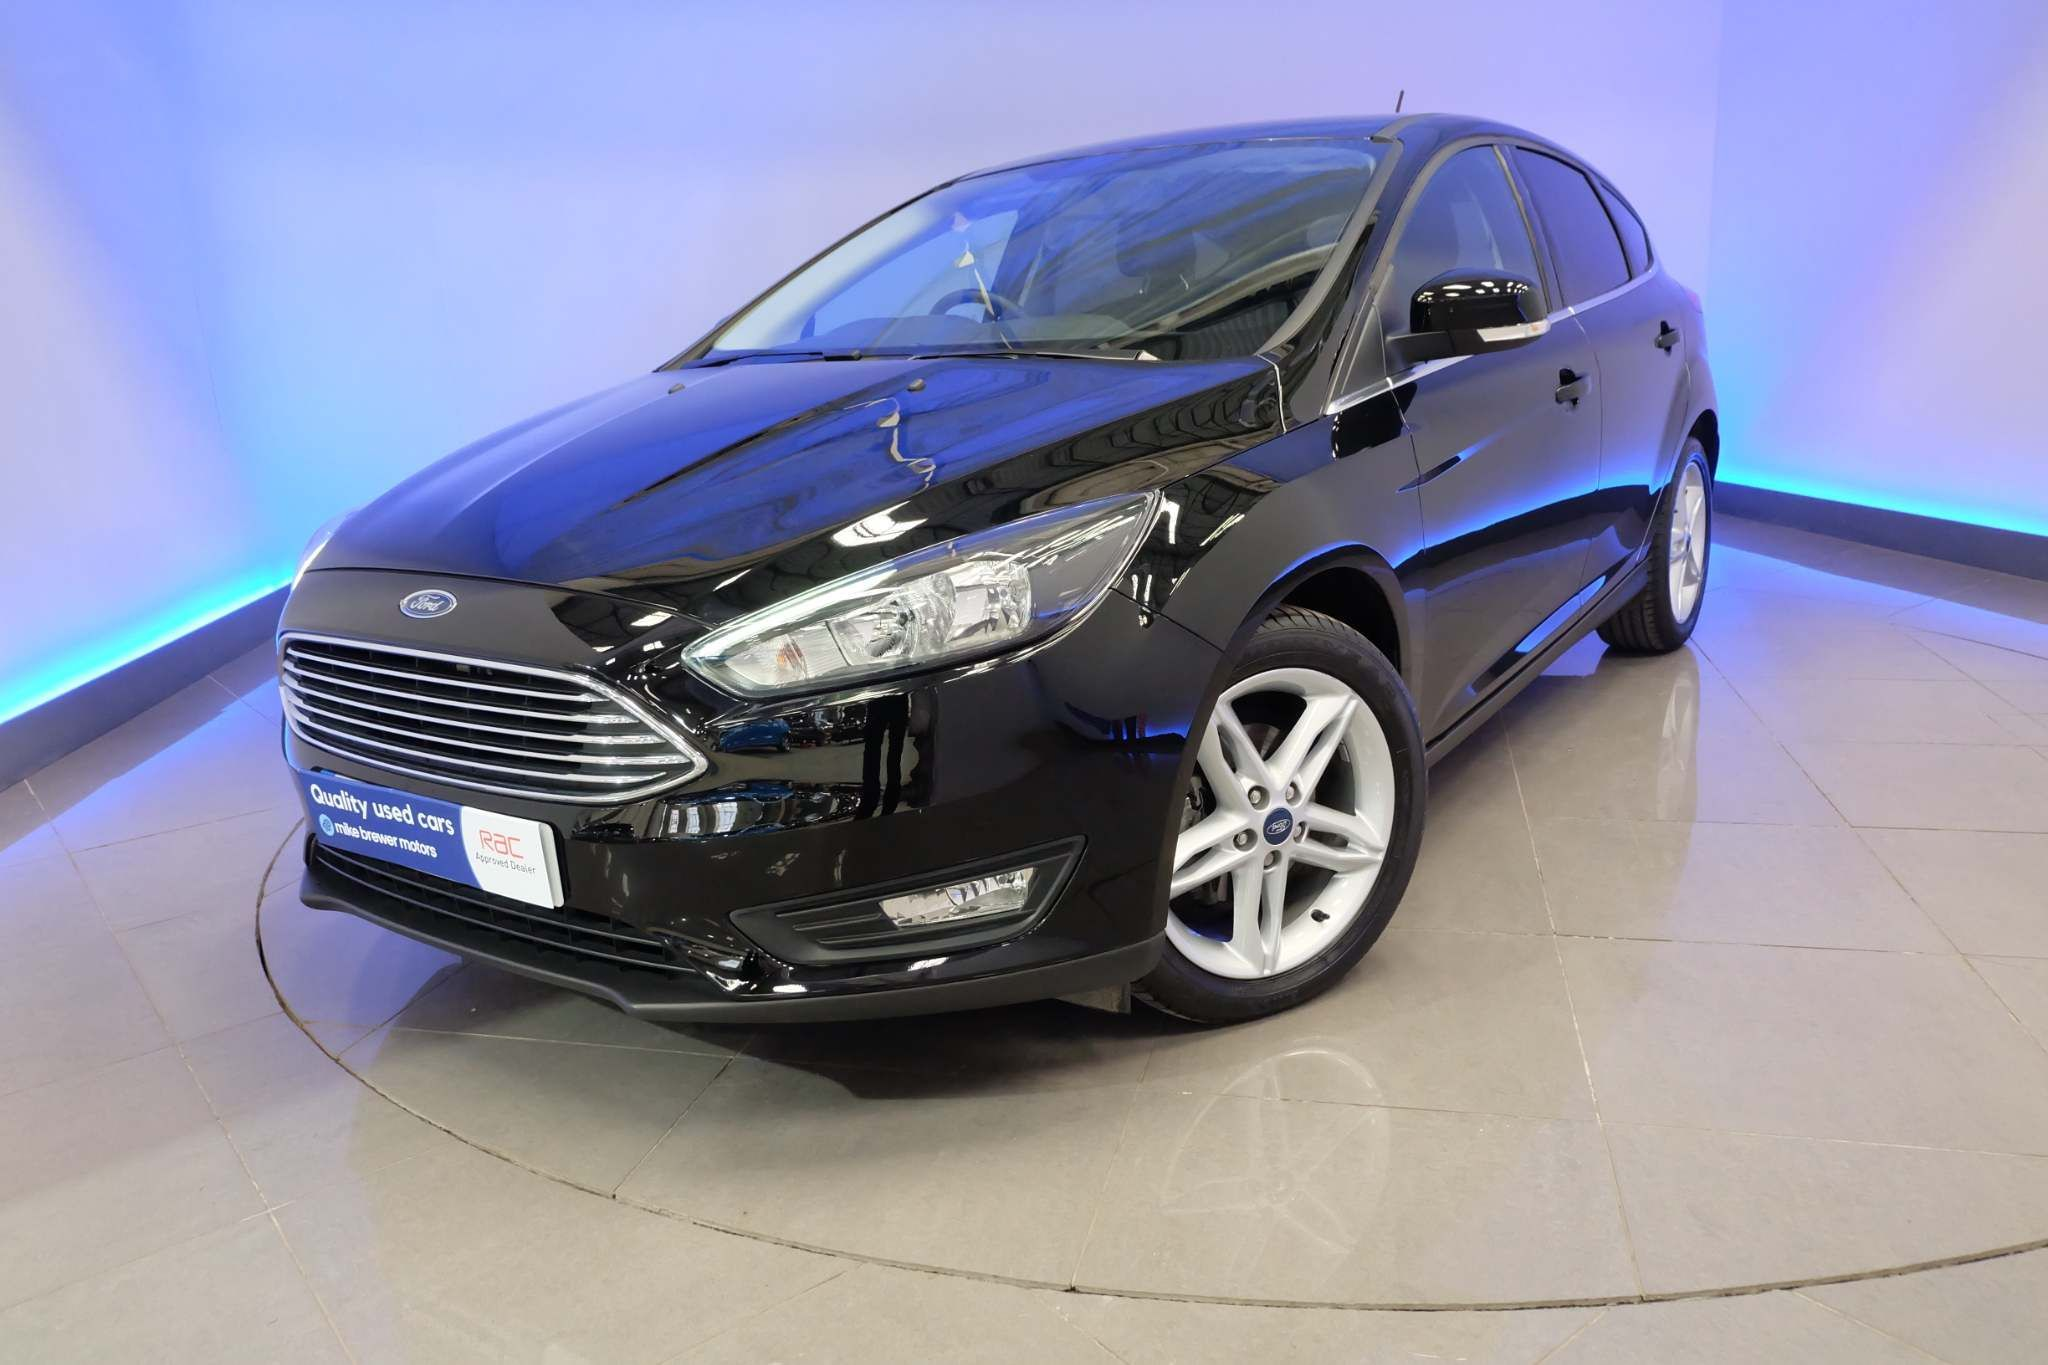 Used Ford Focus 1.5 Tdci Zetec Edition (s/s) 5dr